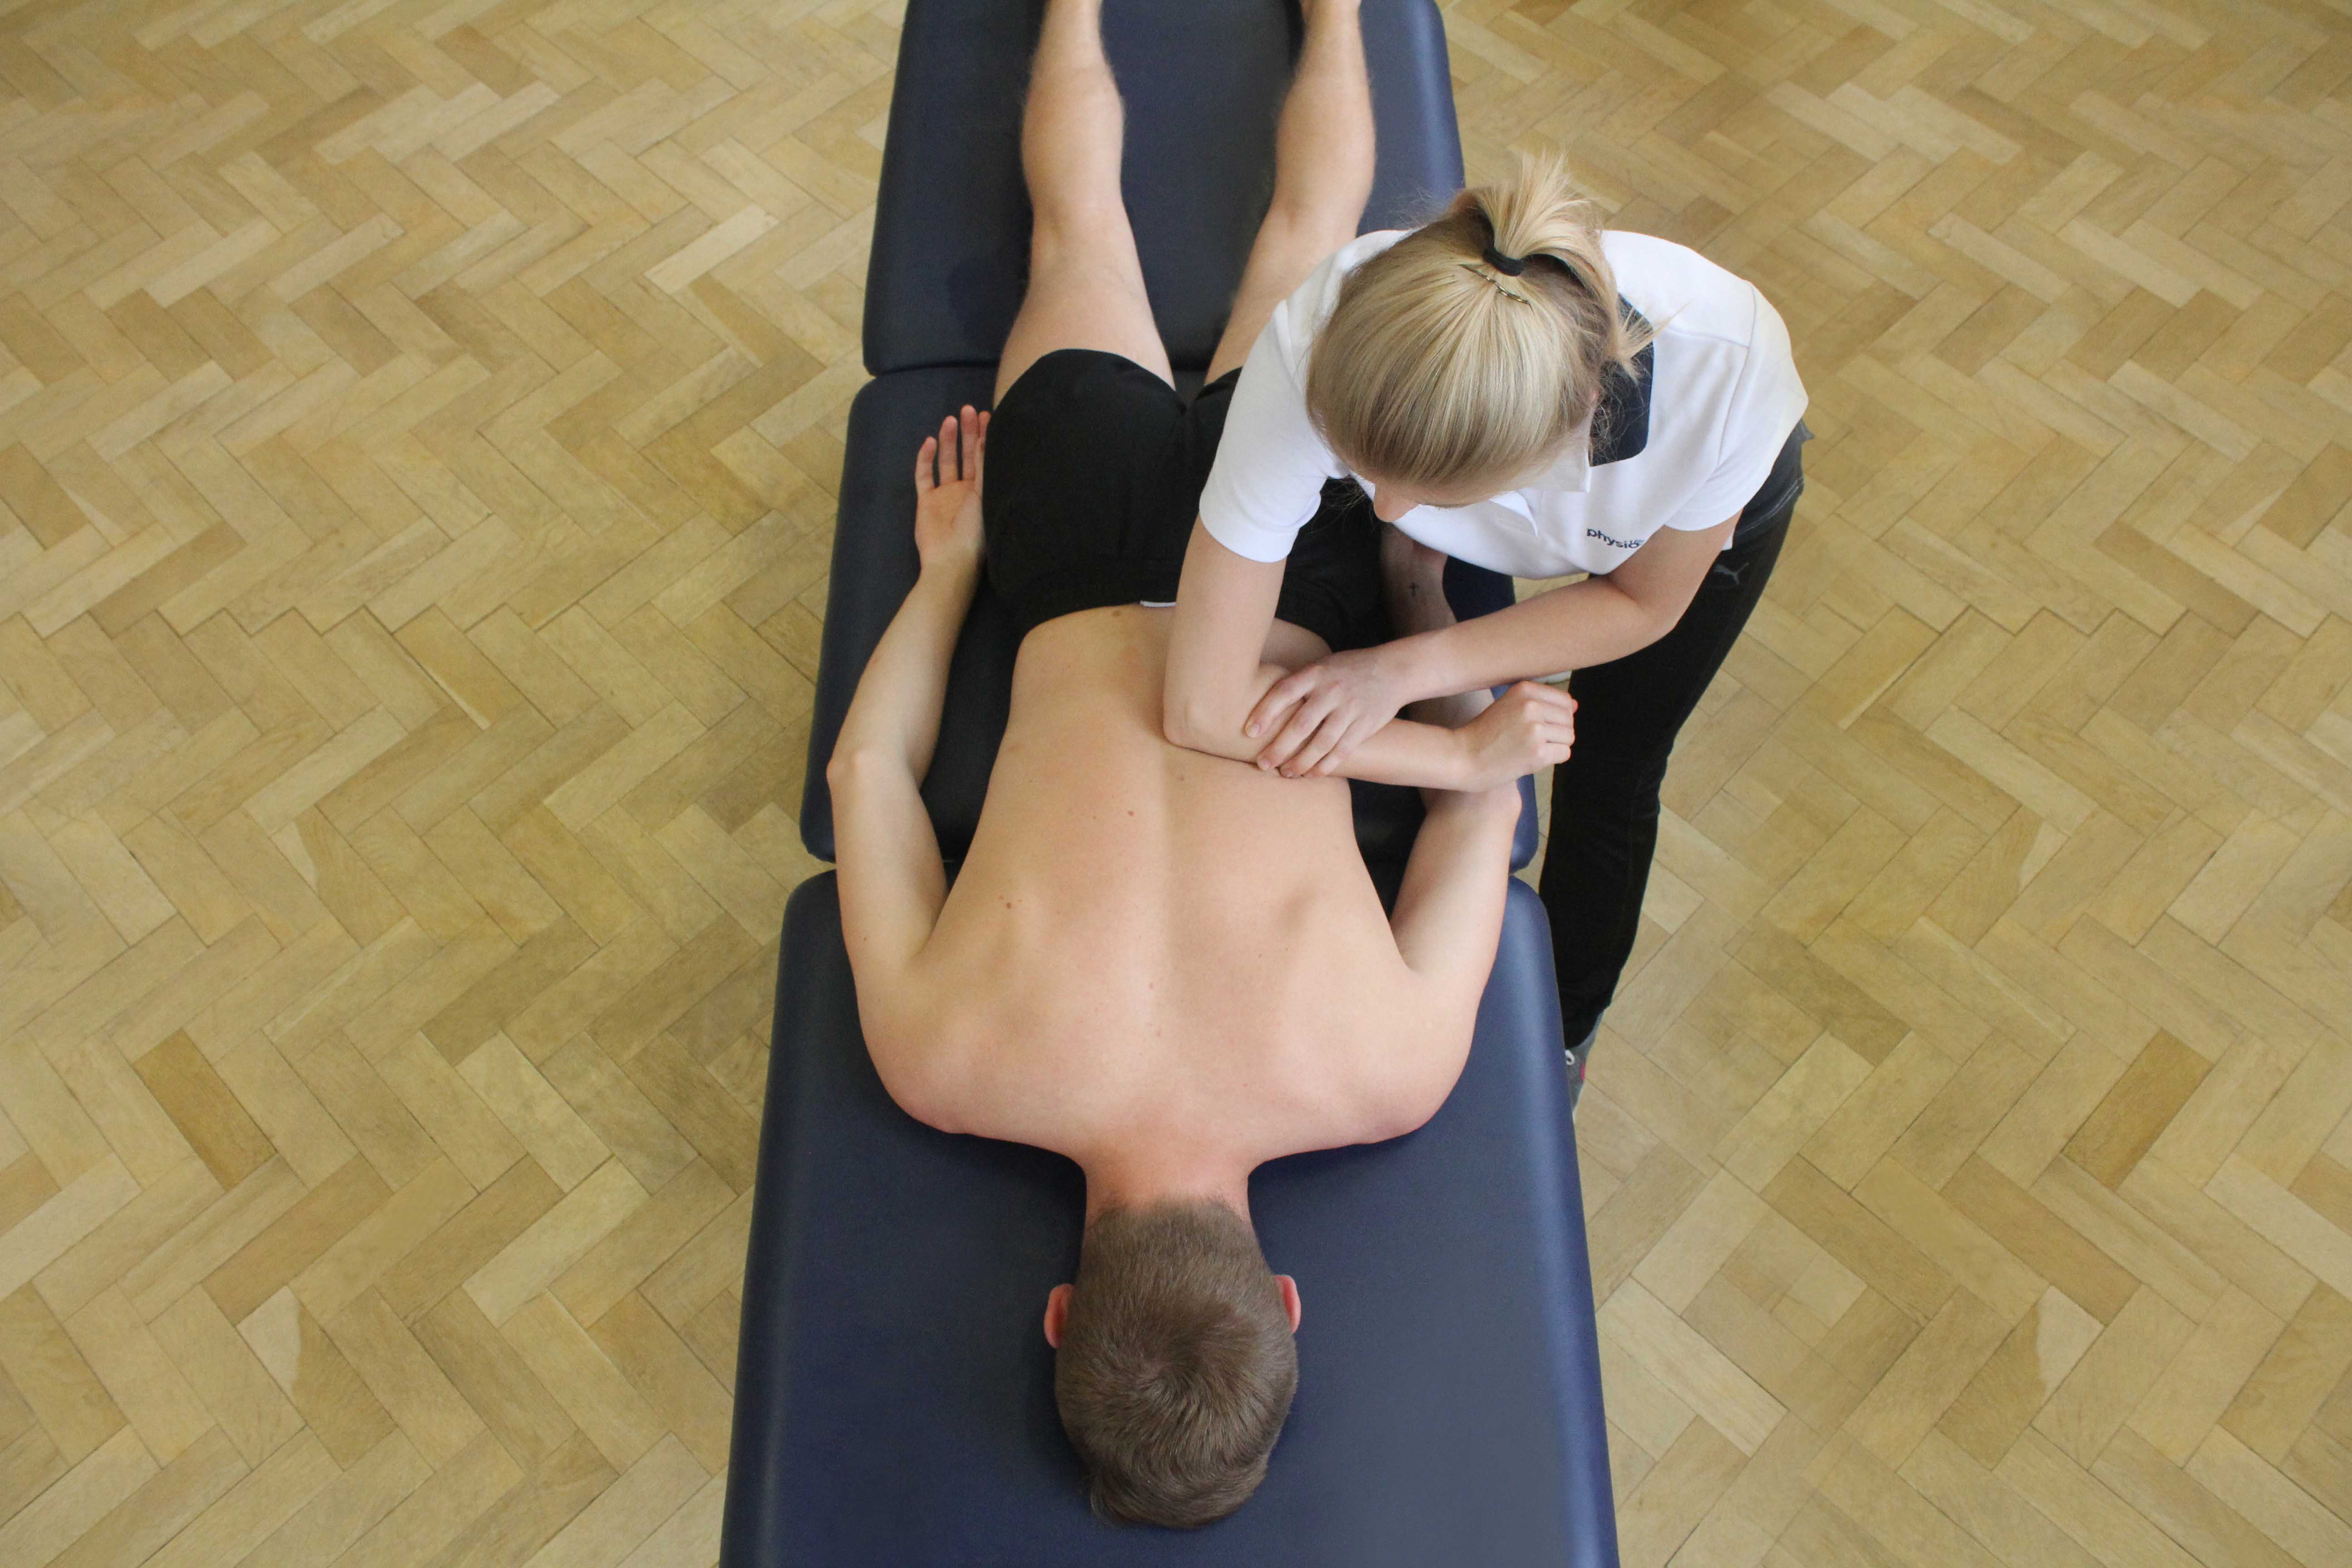 Deep tisue massage of the lower back by a specilaist massage therapist